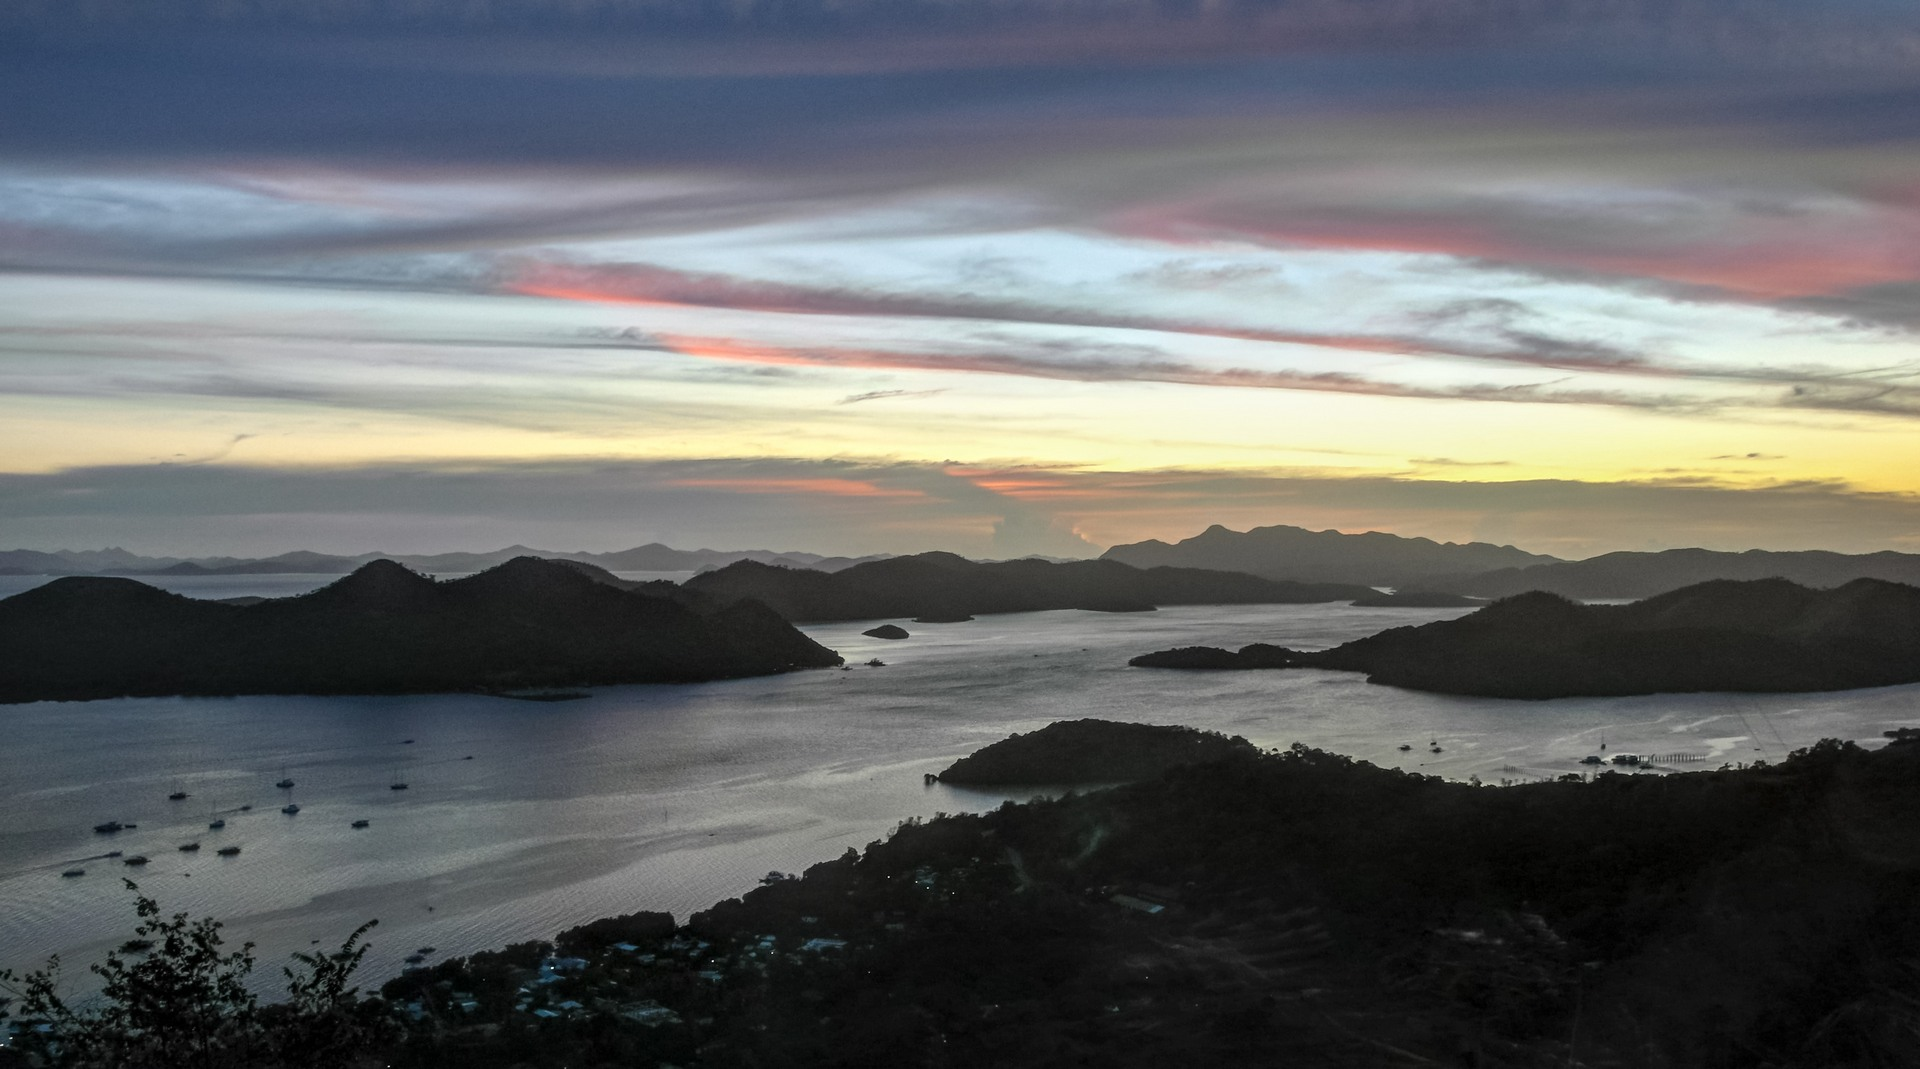 Sunset over the island of Coron, Philippines